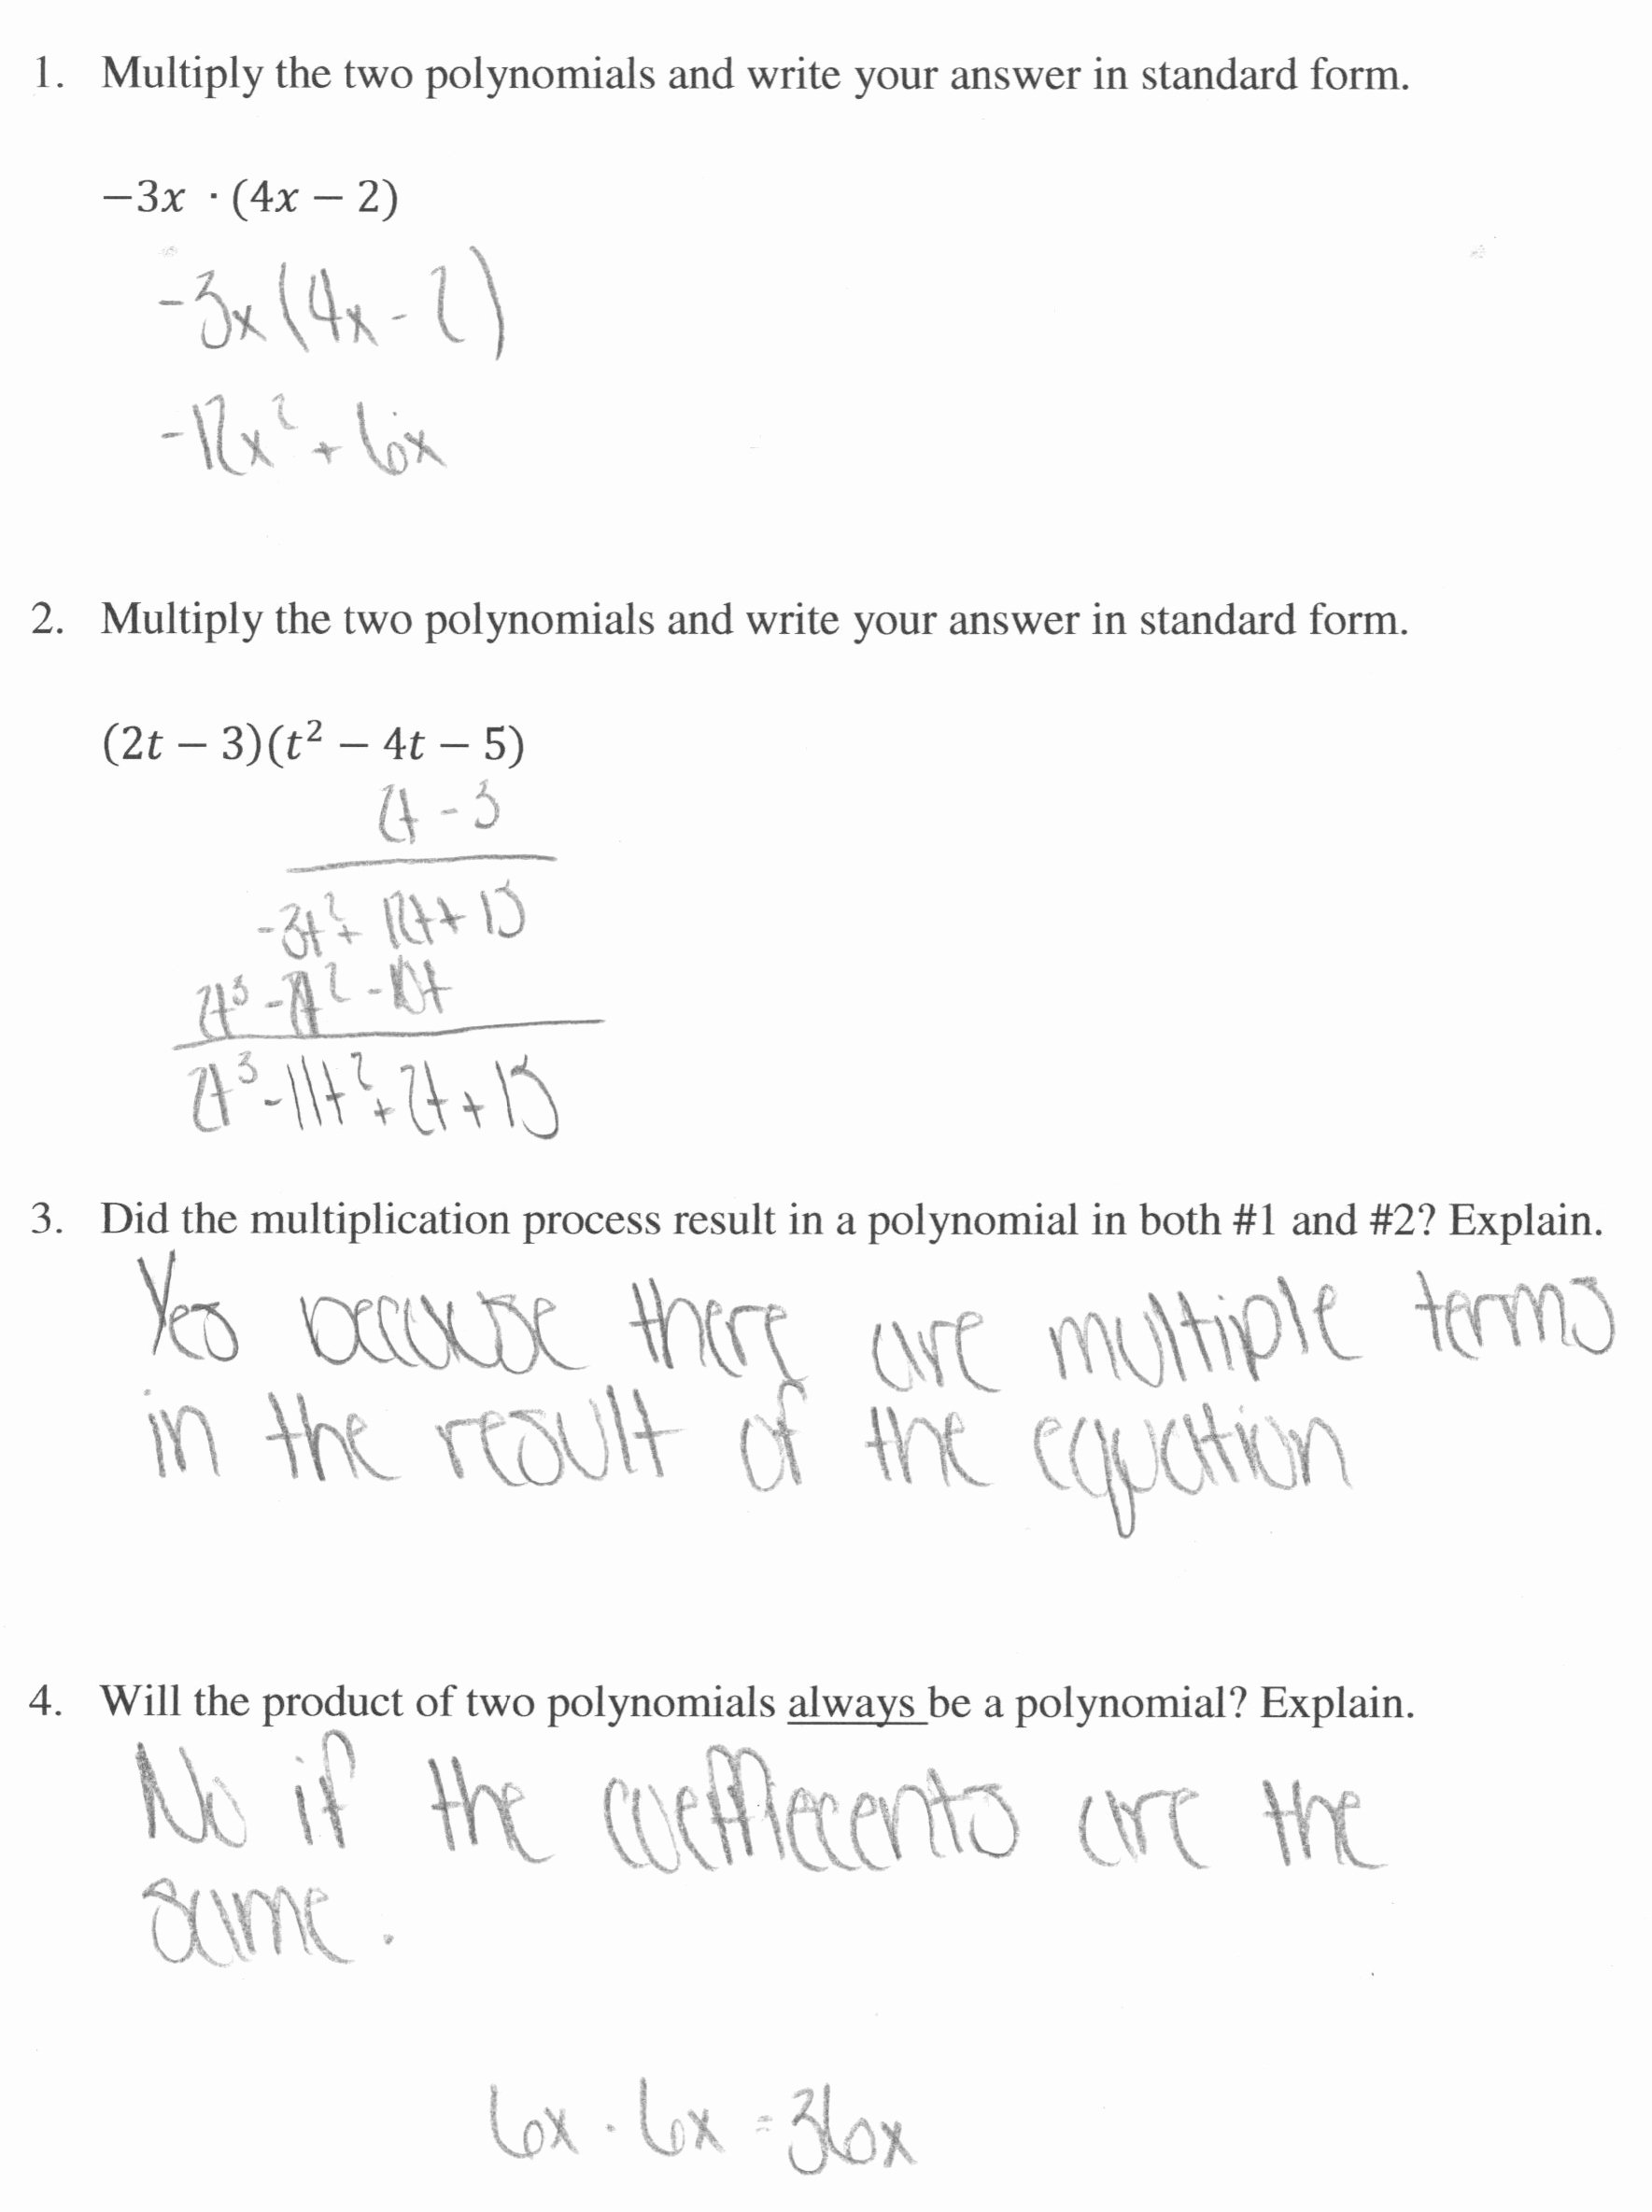 Multiplying Polynomials Worksheet Answers Lovely Multiplying Polynomials 1